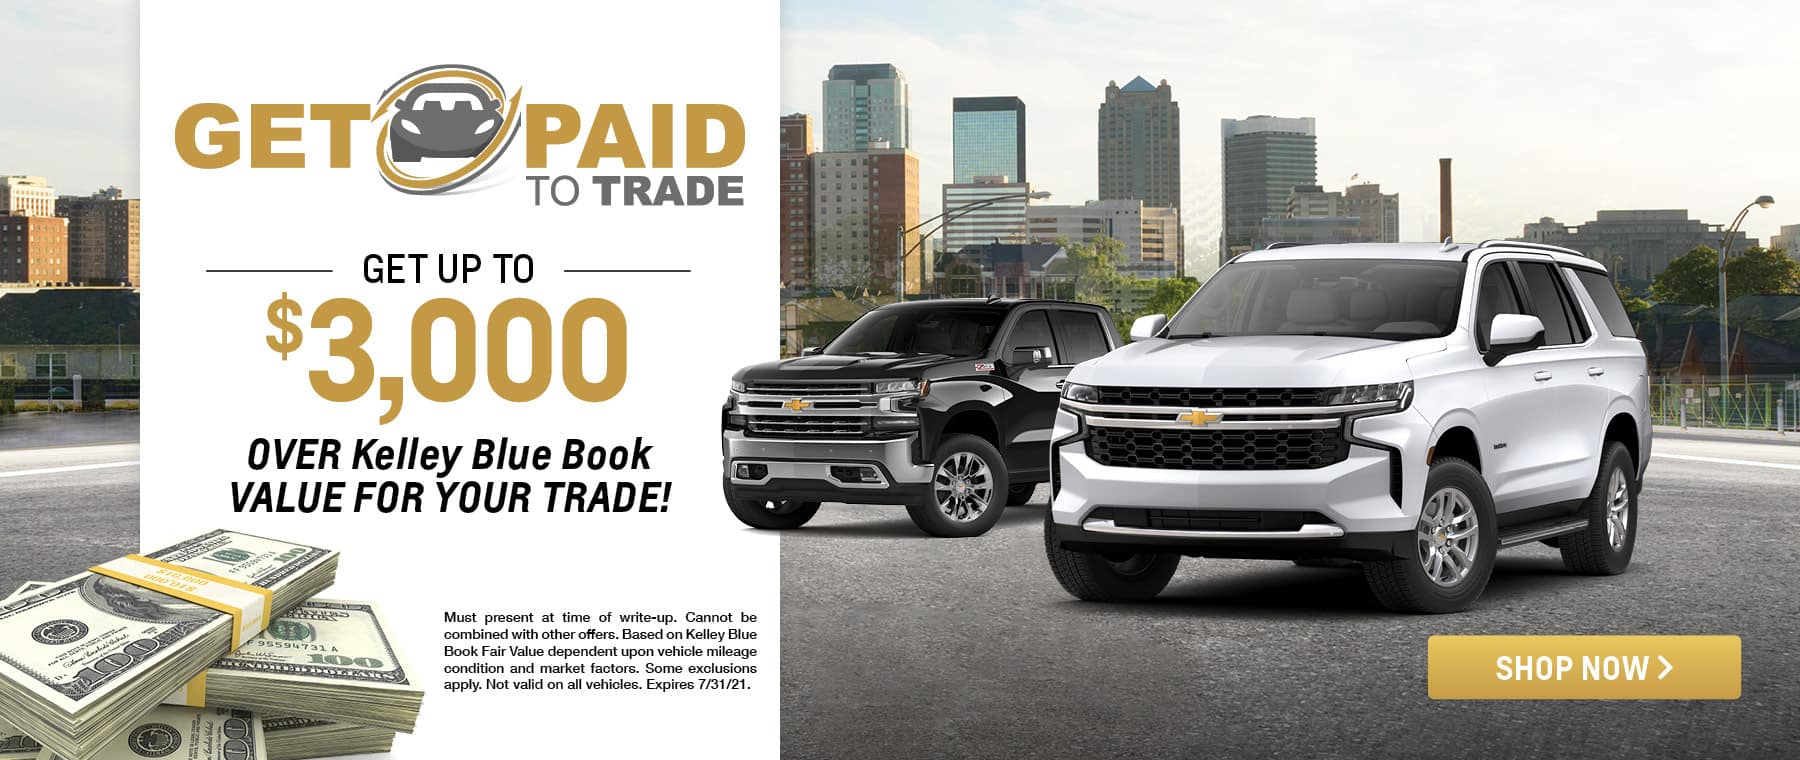 Get up to $3000 OVER Kelley Blue Book Value for Your Trade